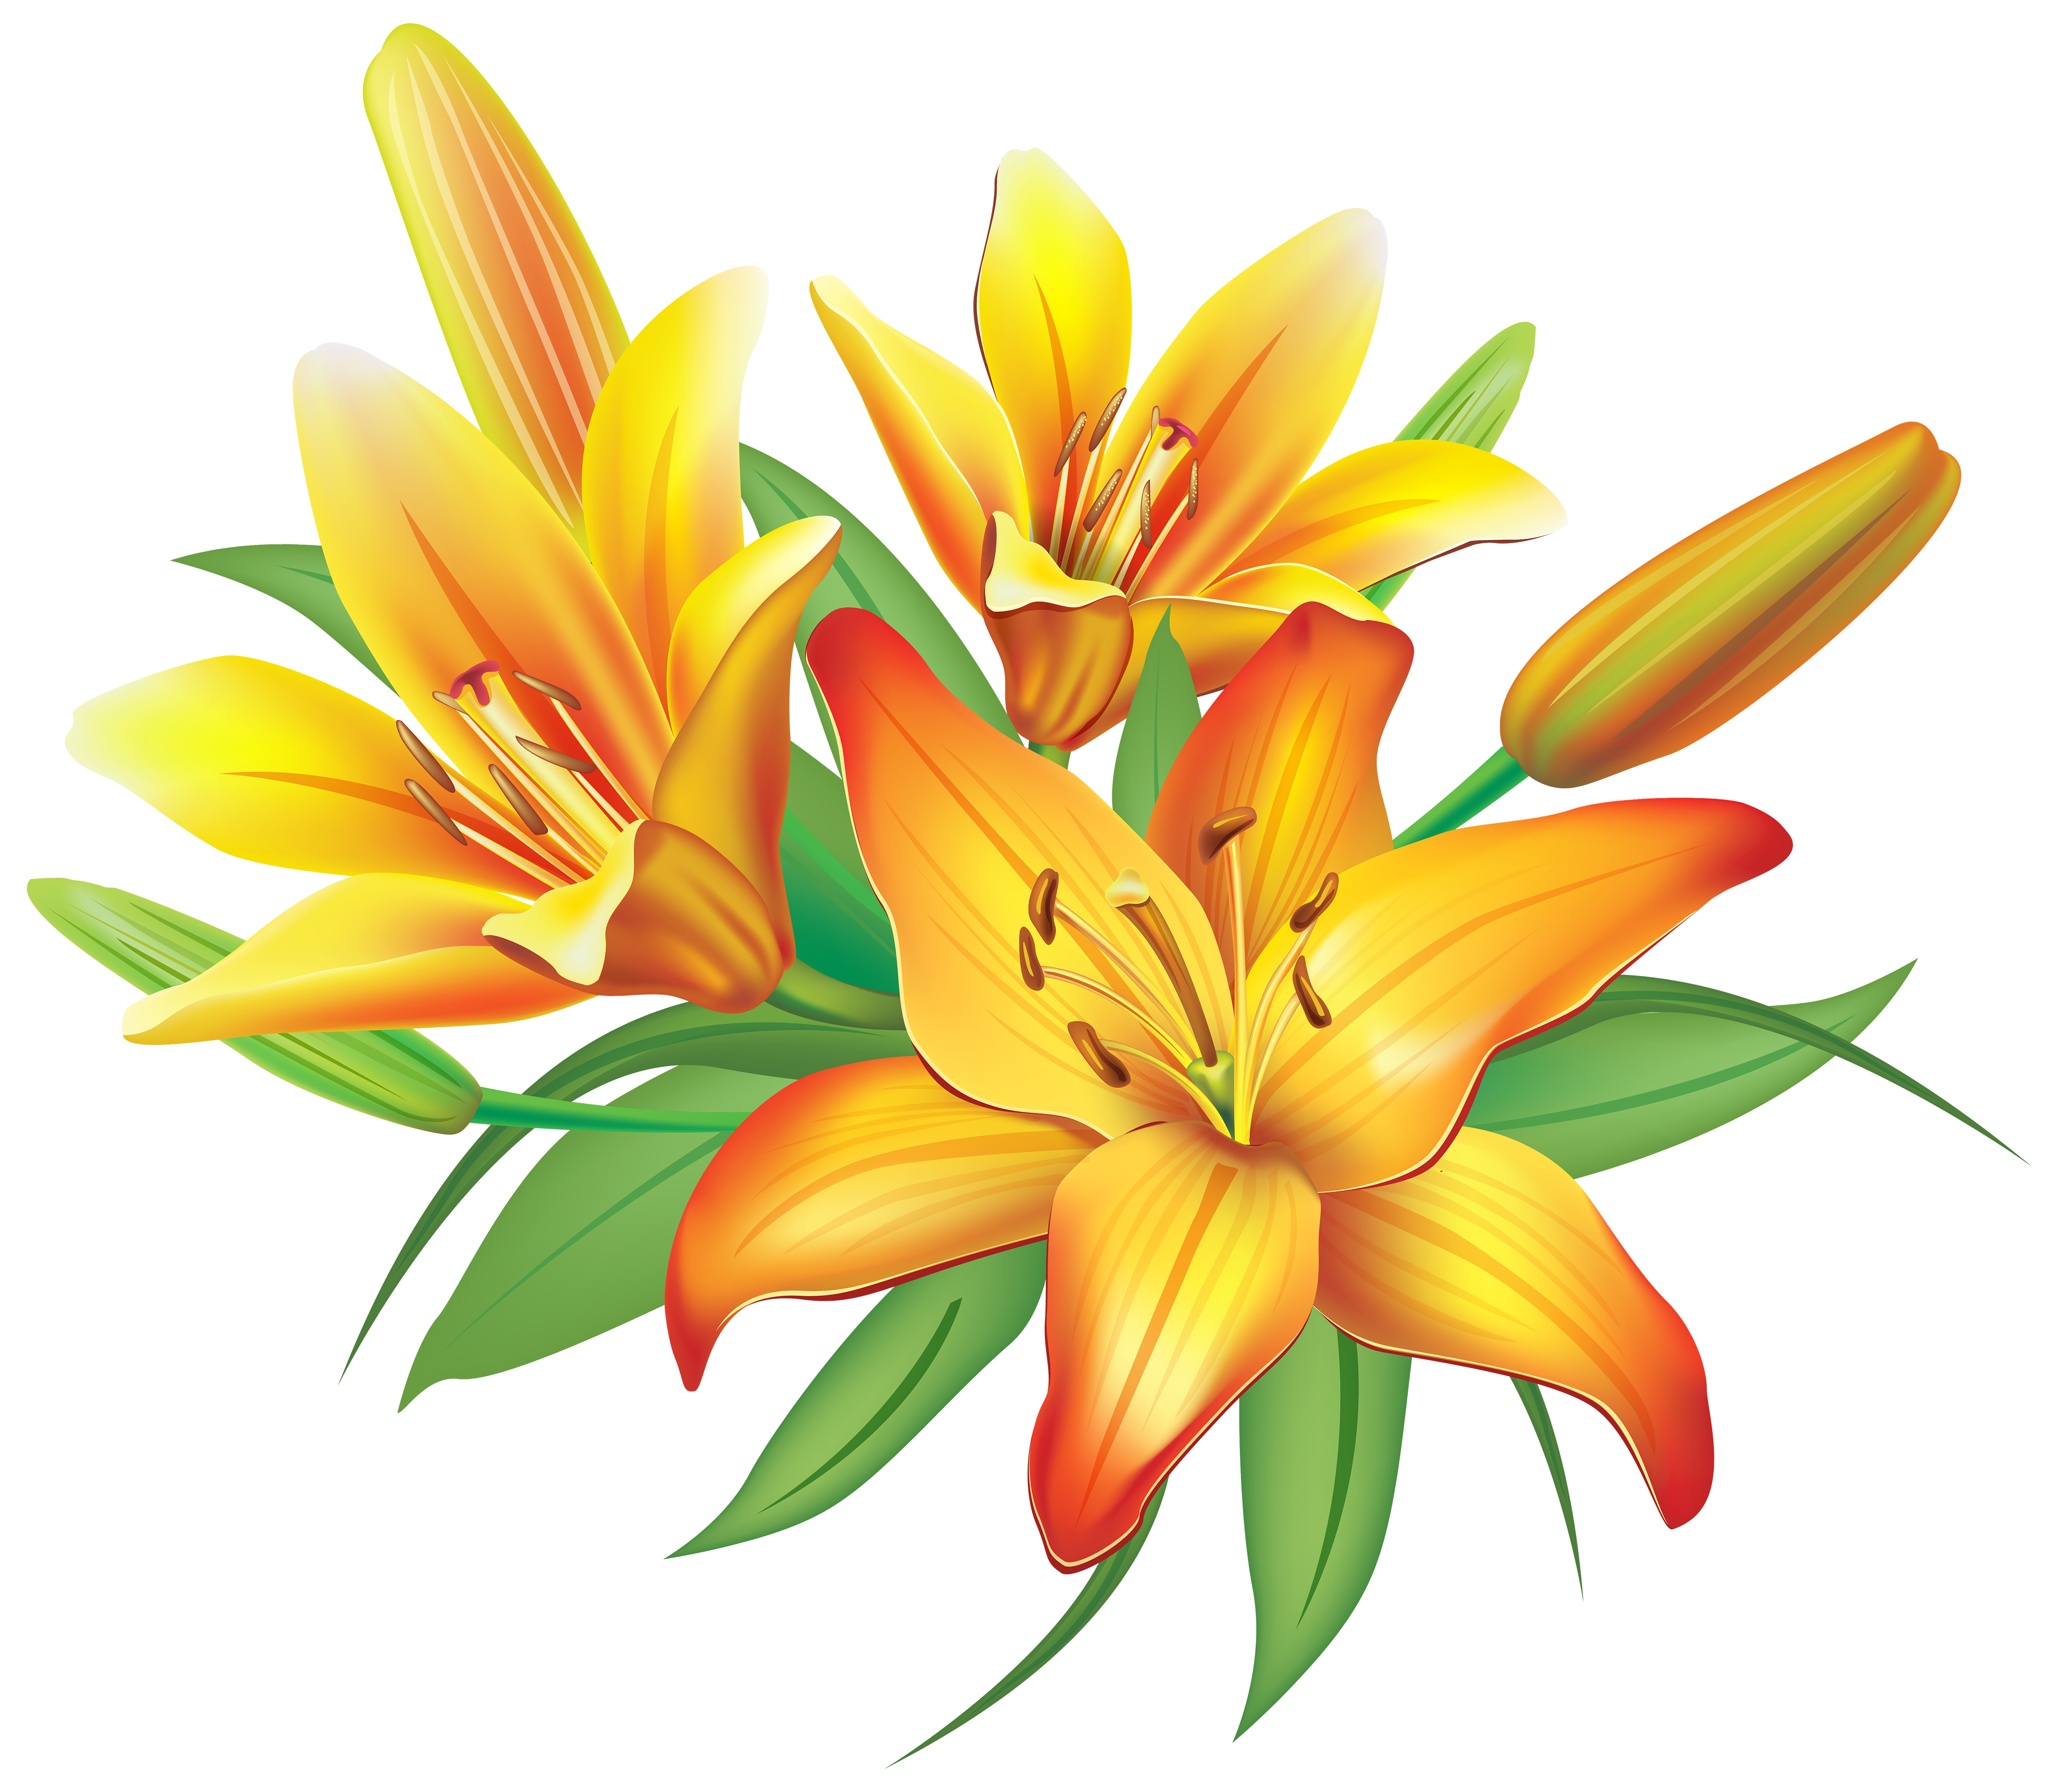 jpg royalty free library Lilies clipart. Yellow flowers decoration png.